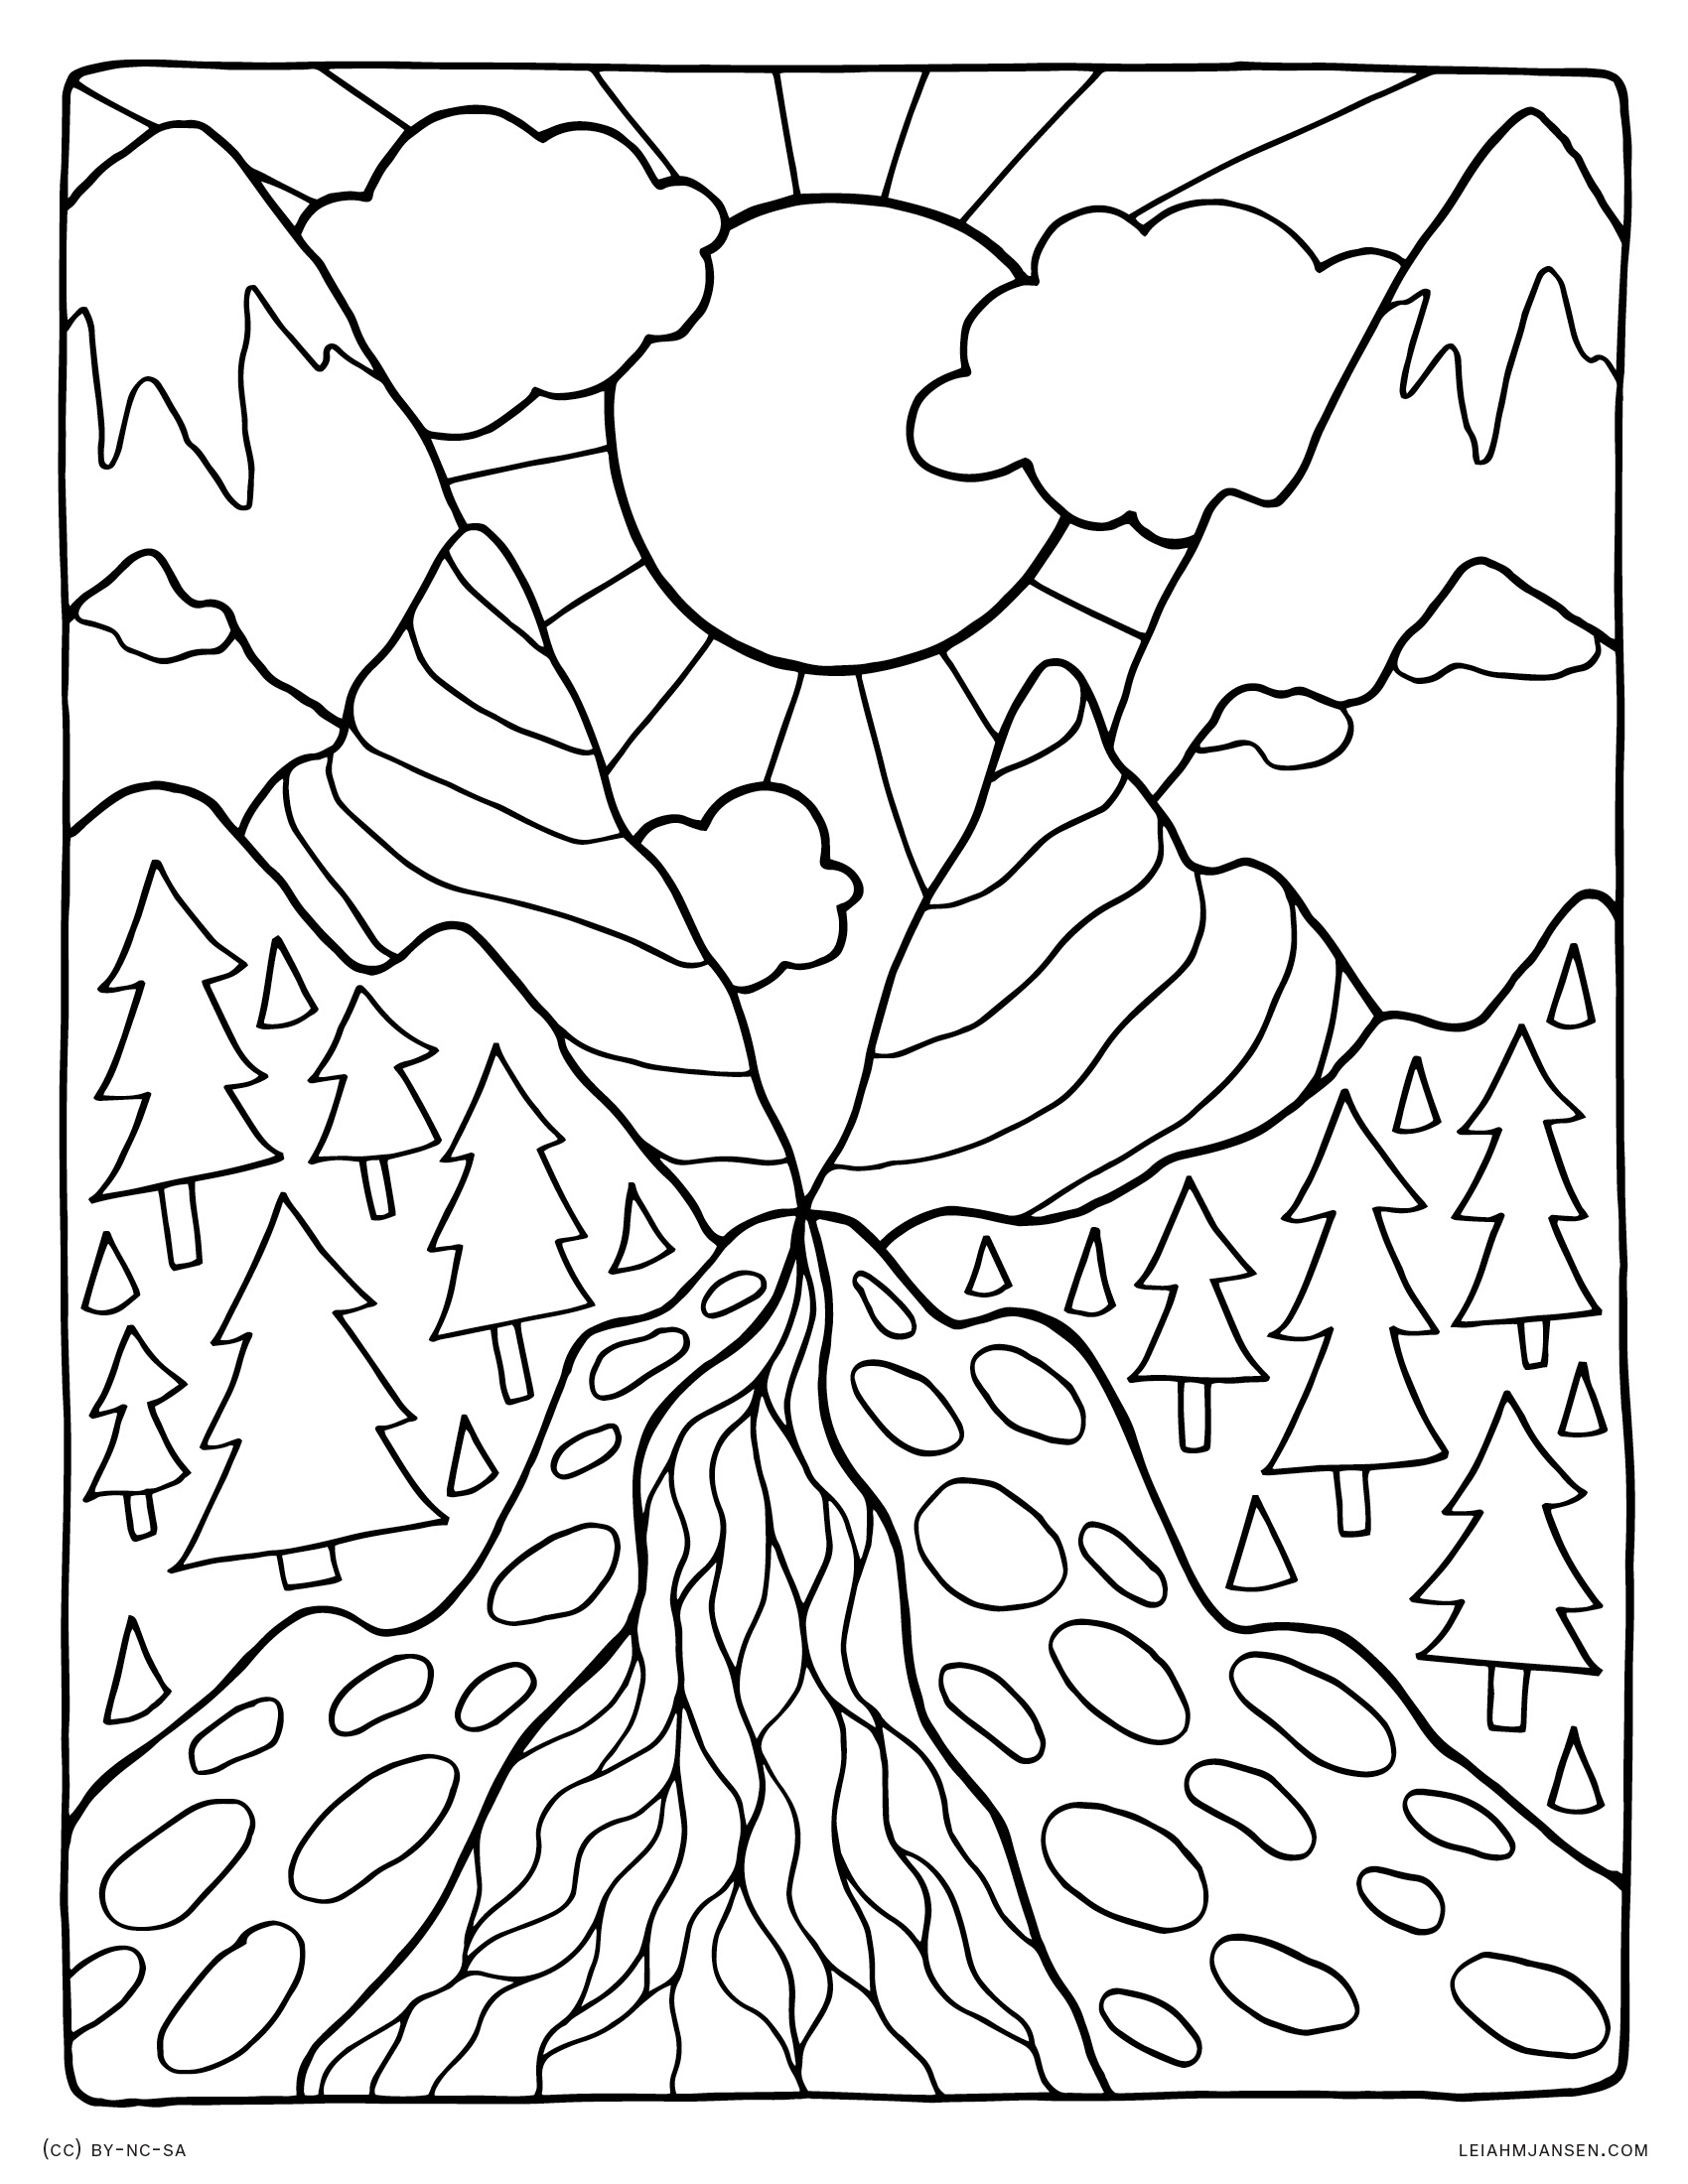 Coloring pictures of nature -  Mountain Pass Landscape Peaceful Nature Scene Free Printable Coloring Page For Adults And Kids